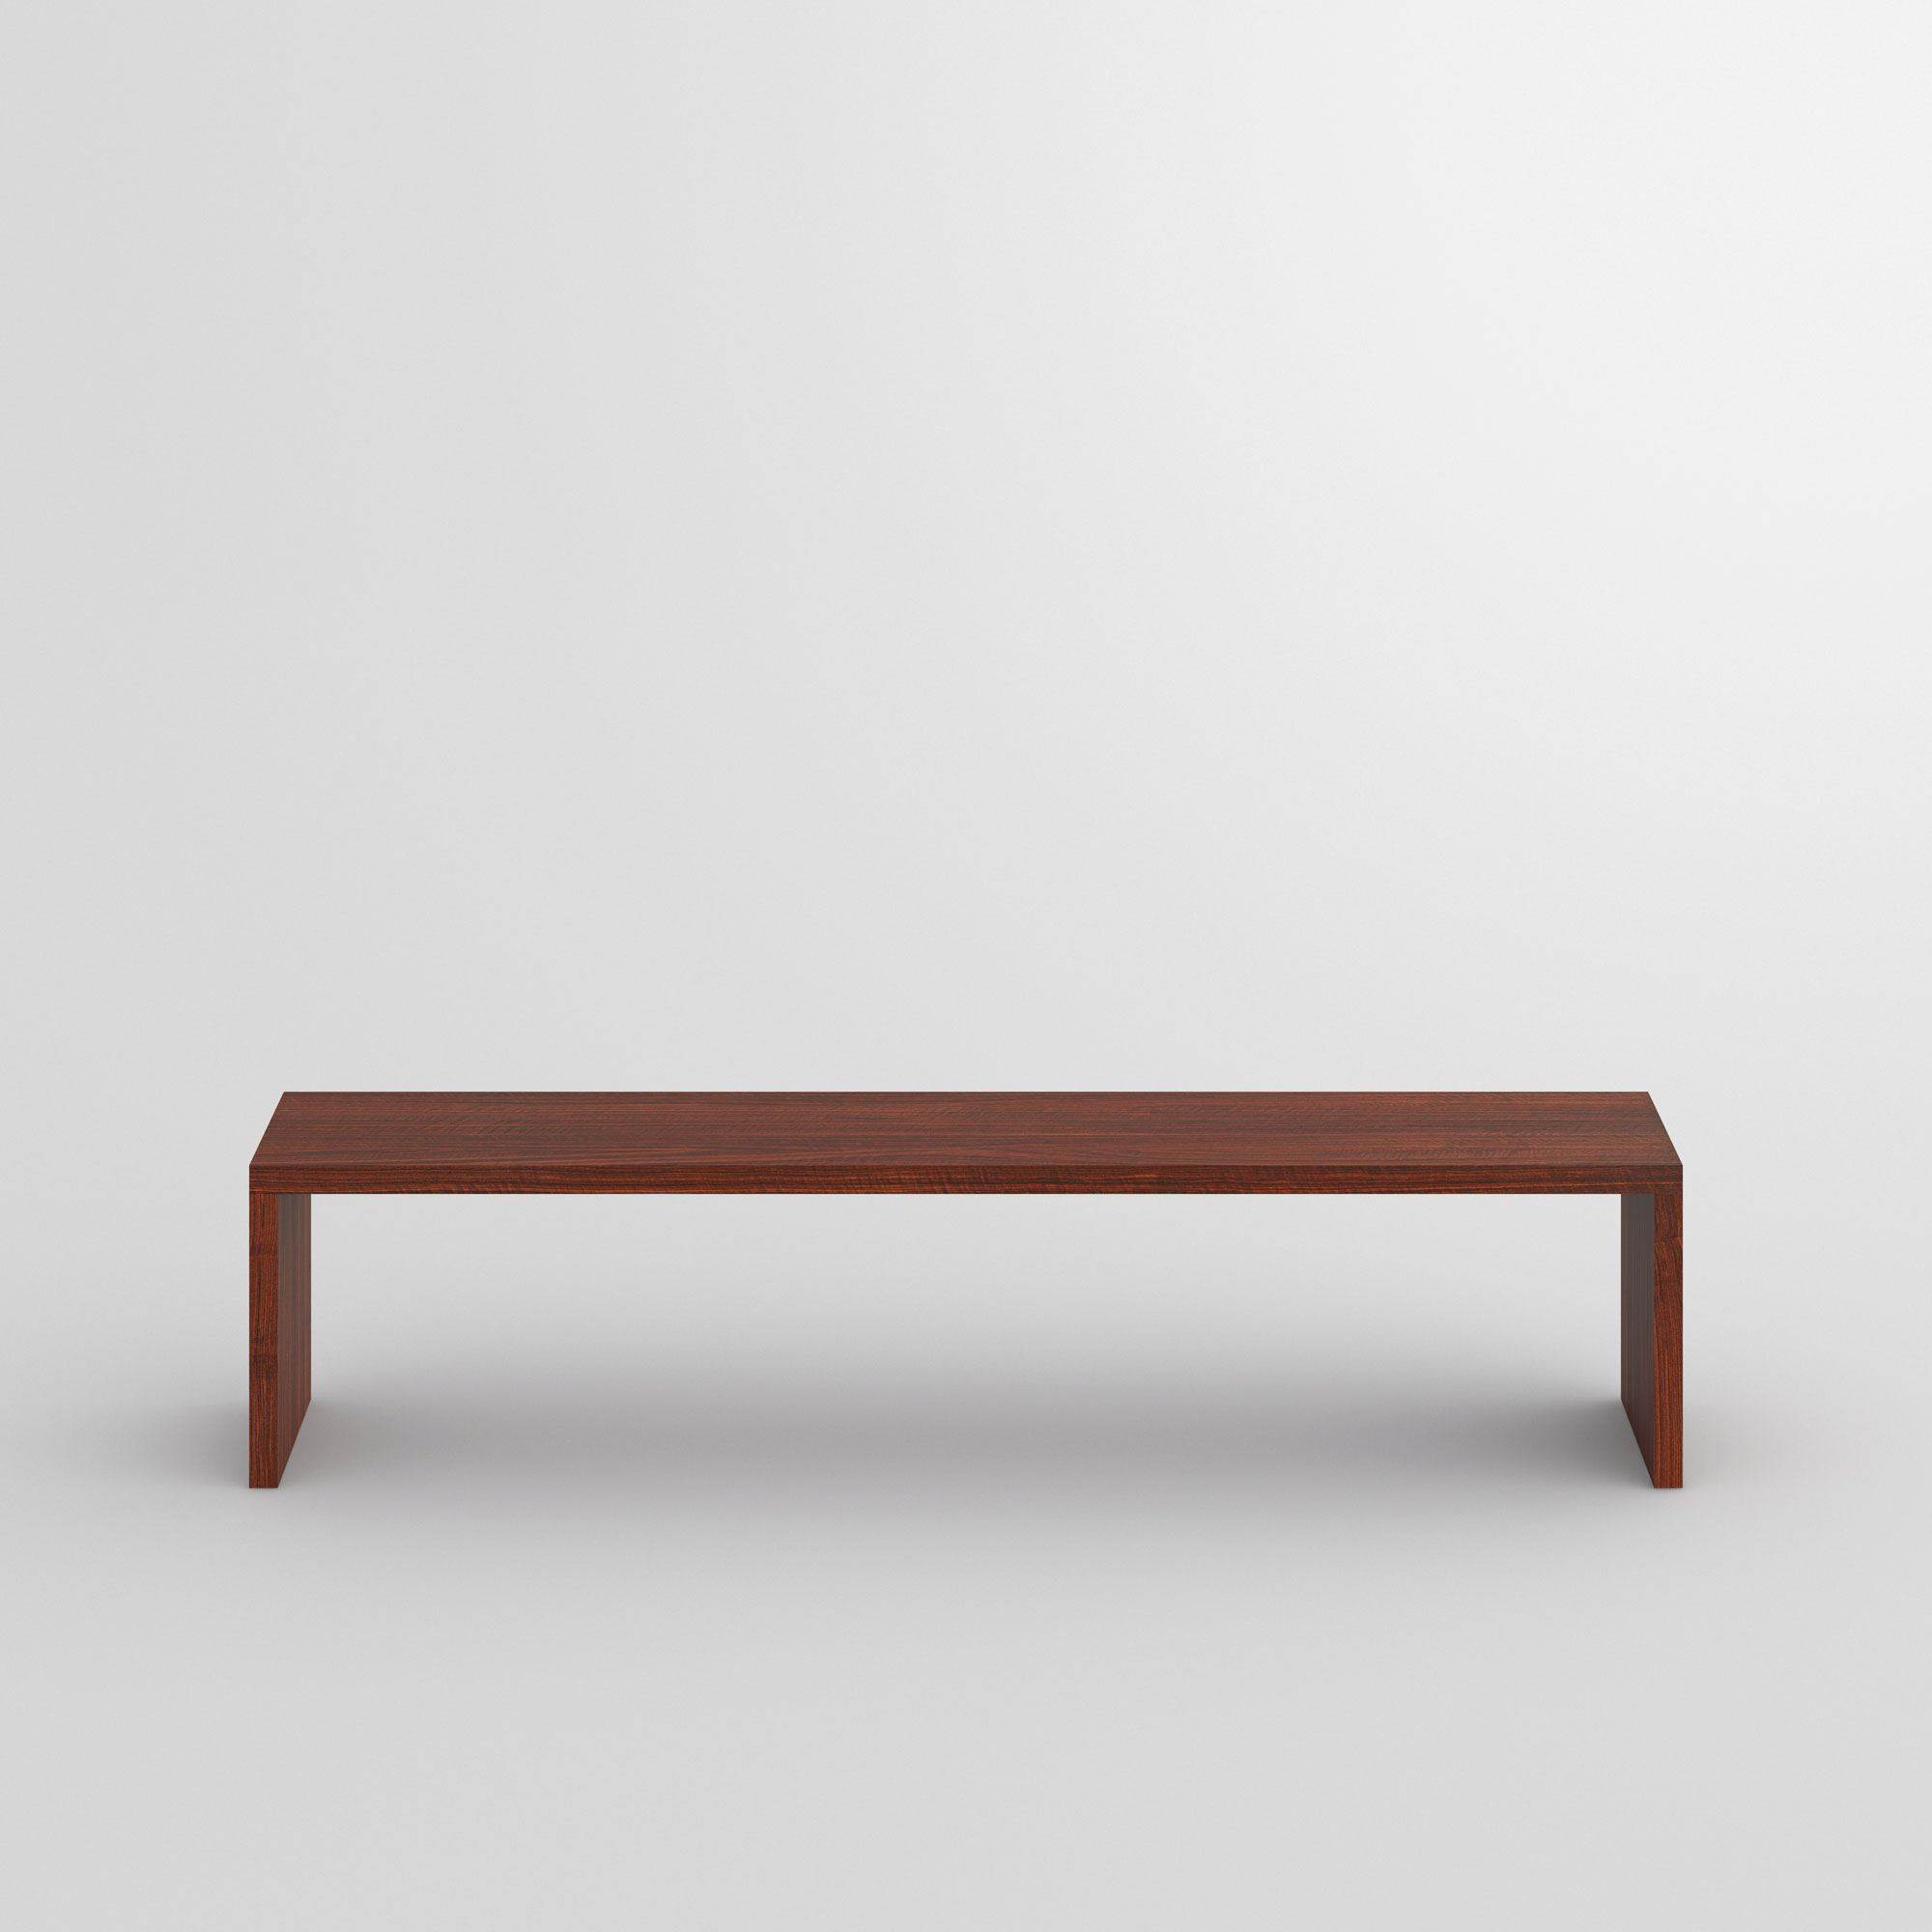 Custom Made Bench MENA 4 cam2 custom made in solid wood by vitamin design